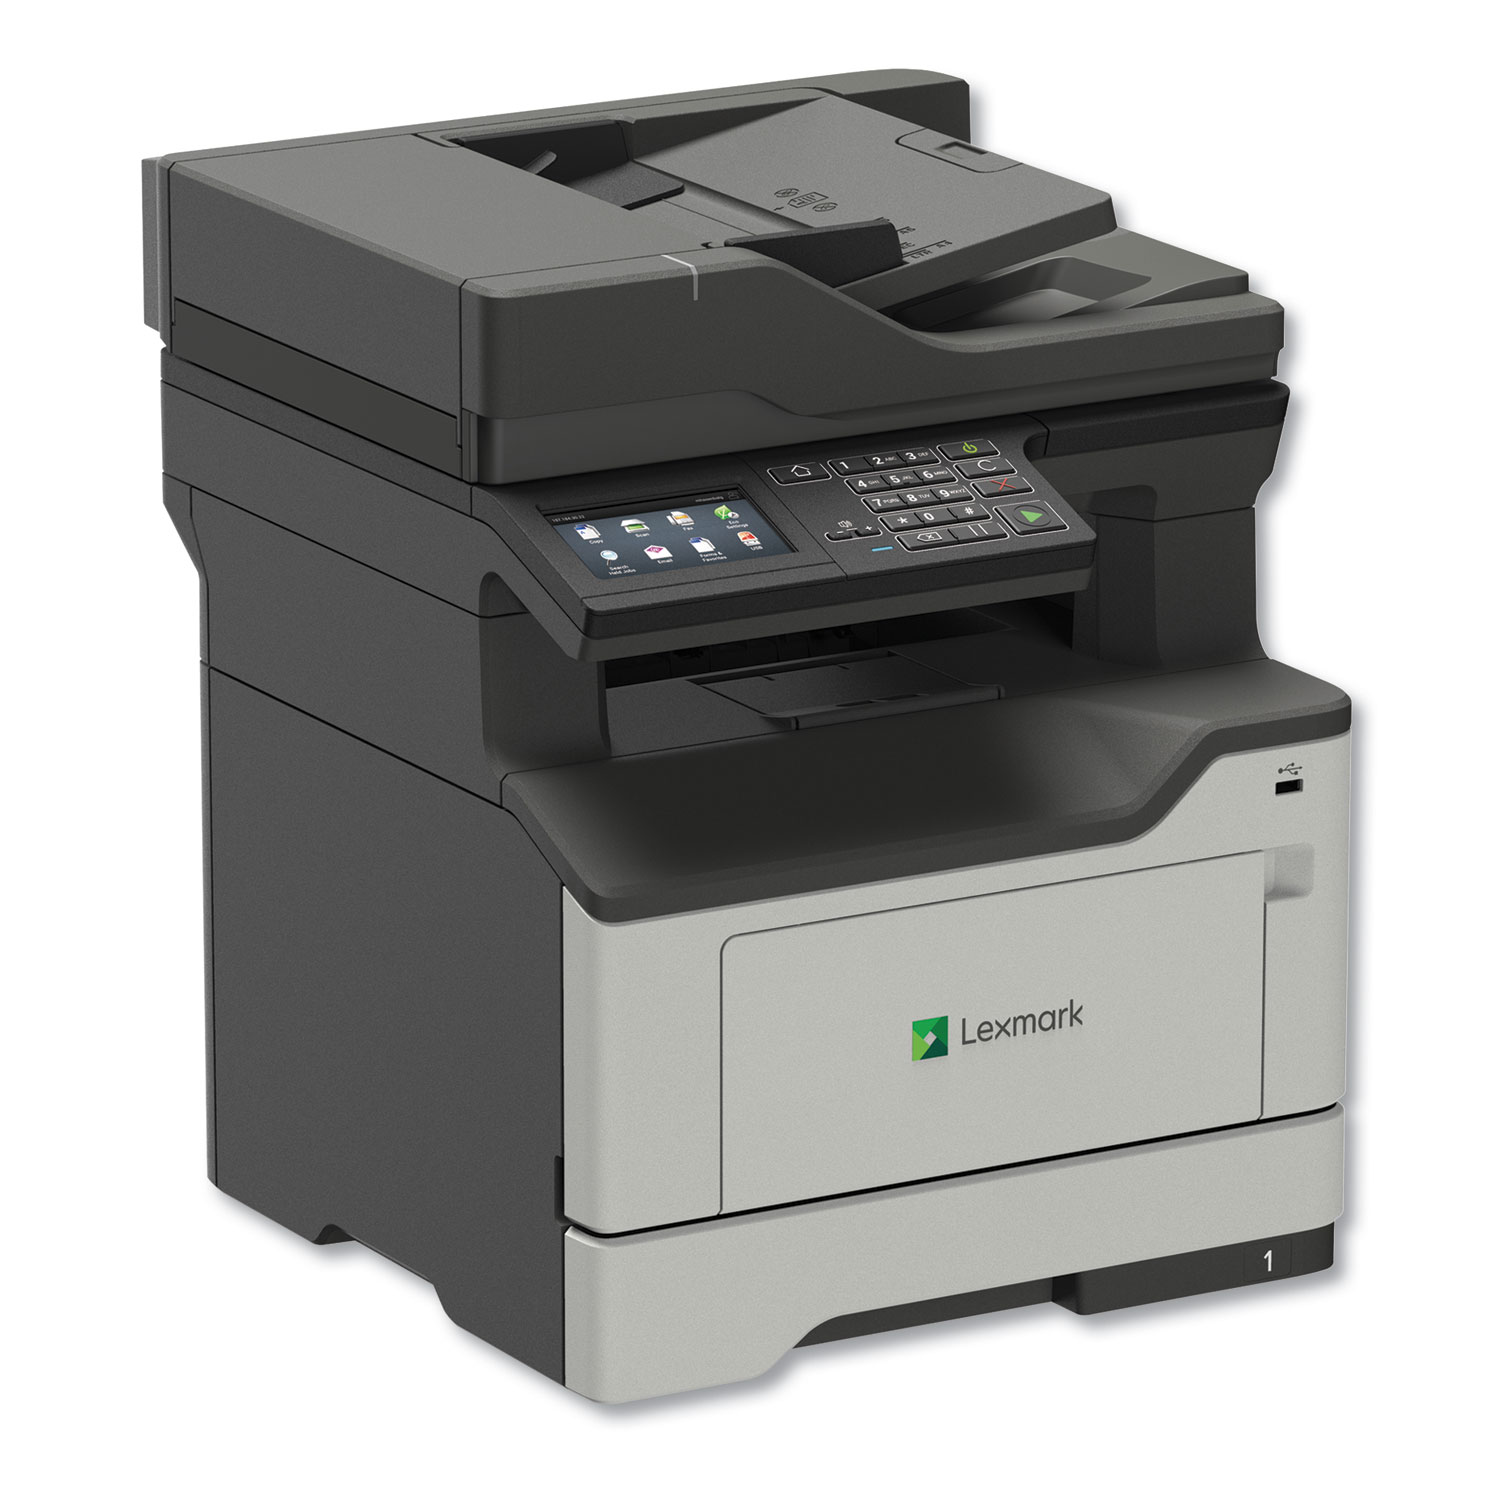 MB2546adwe Multifunction Printer, Copy/Fax/Print/Scan